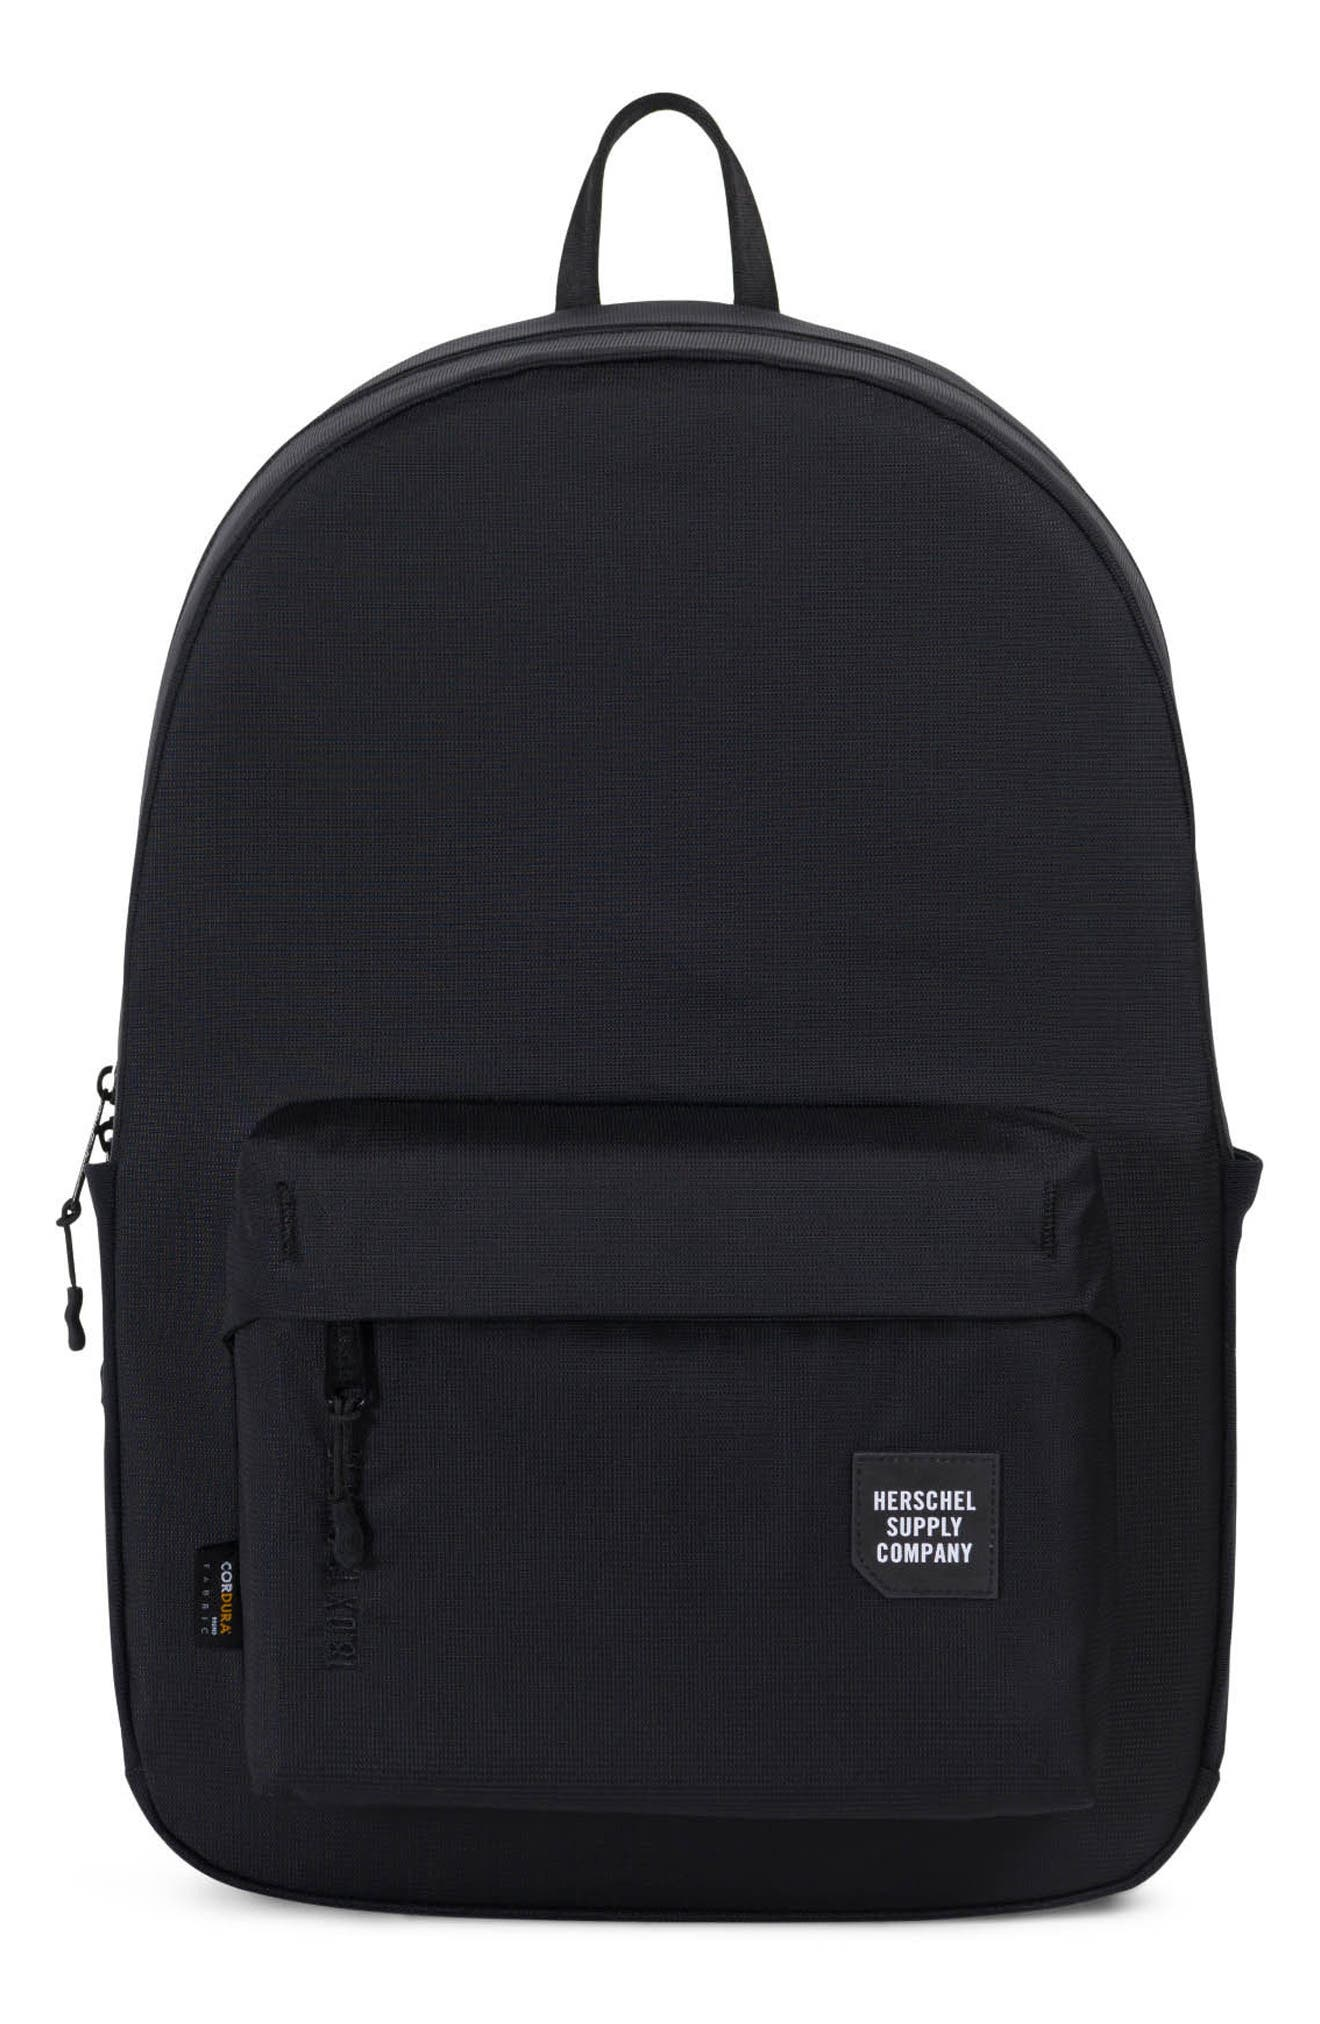 Rundle Trail Backpack,                         Main,                         color, Black